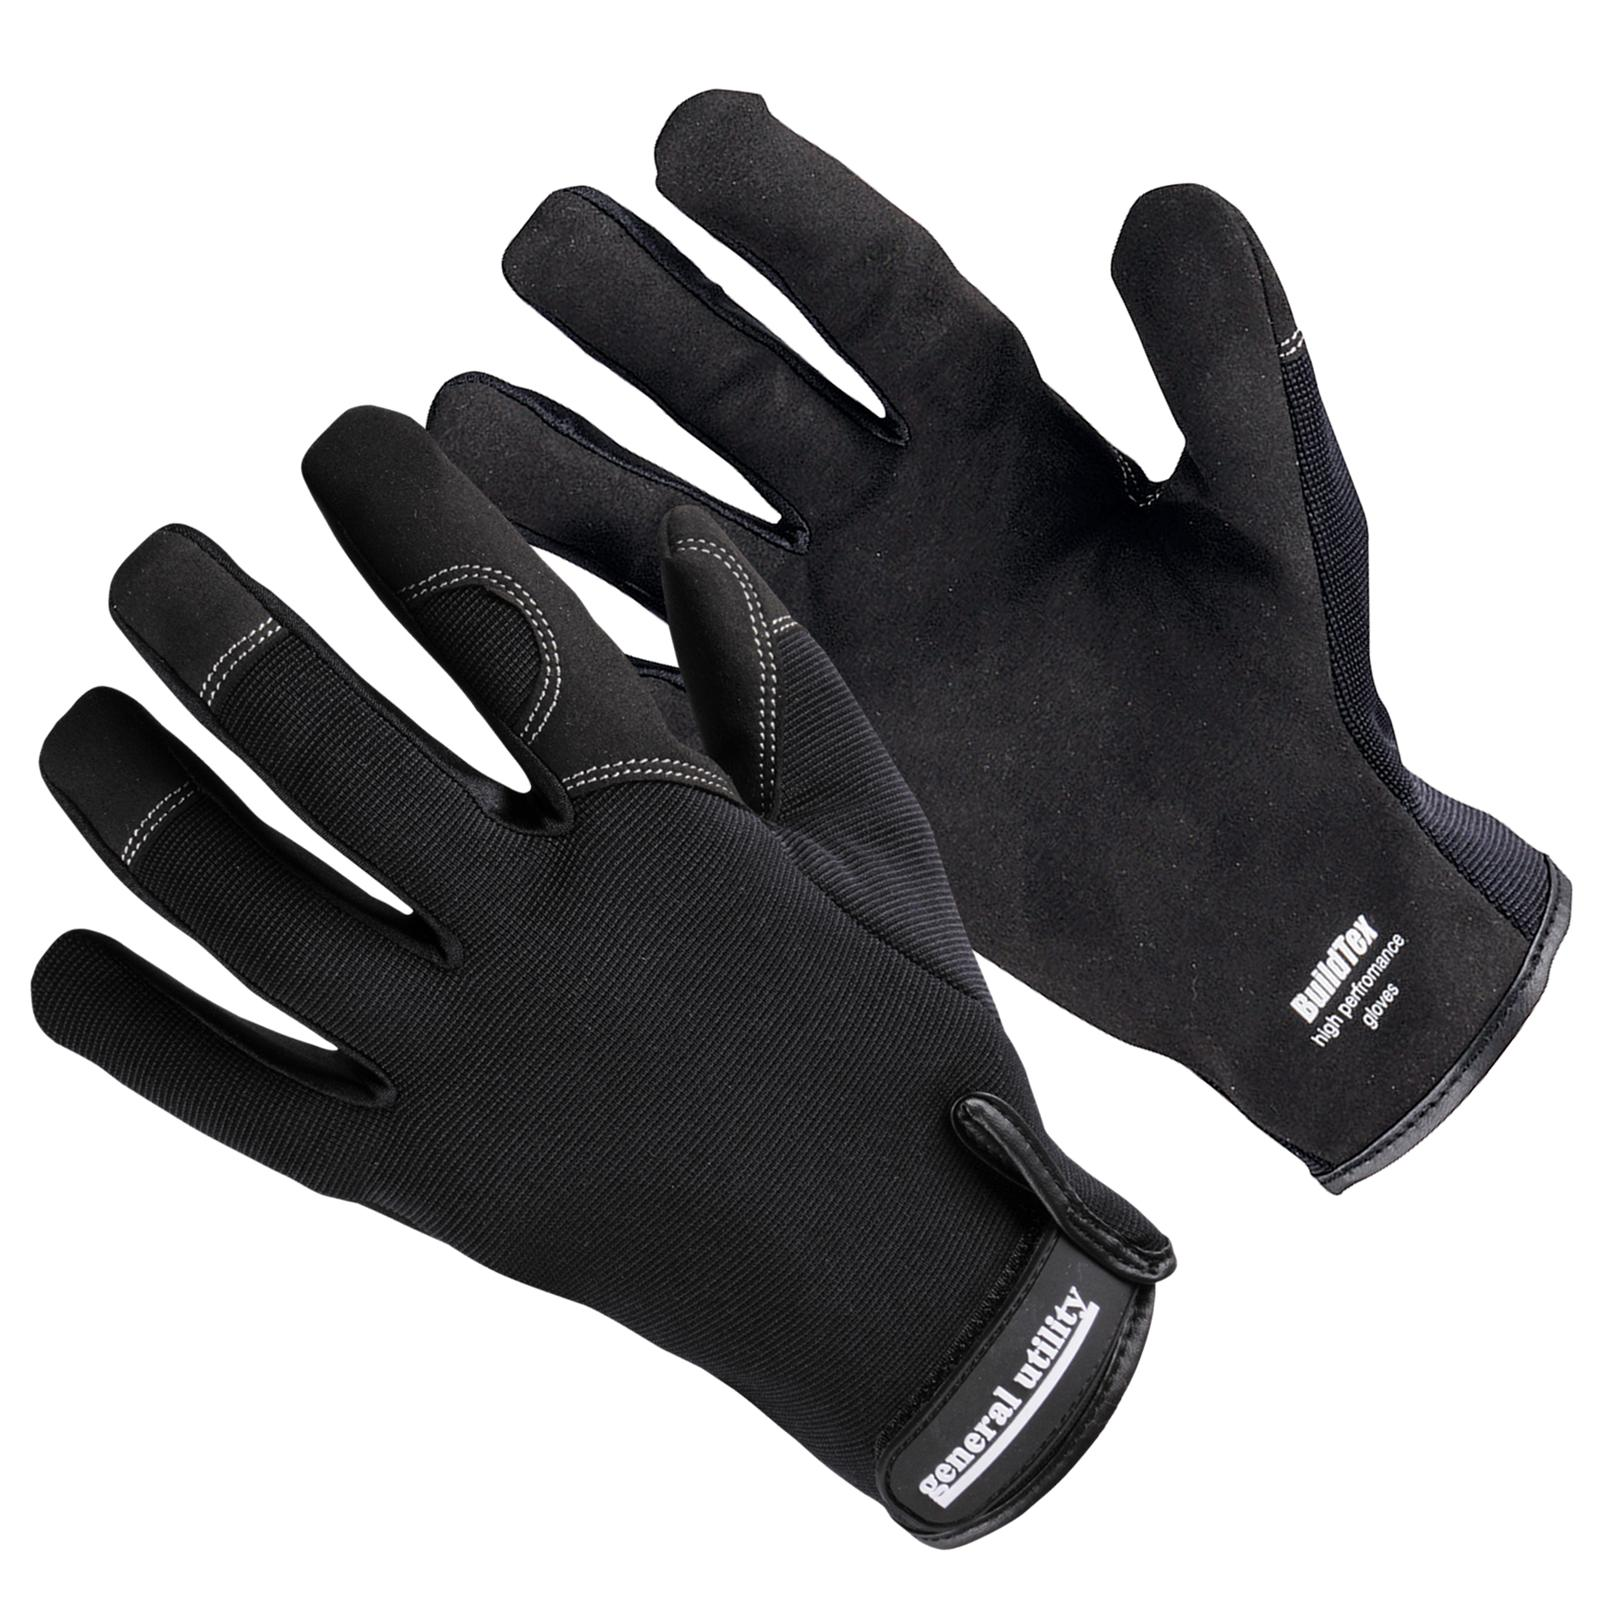 Mens sizes in gloves - New Portwest Mens General Utility High Performance Work Gloves Black 2 Sizes